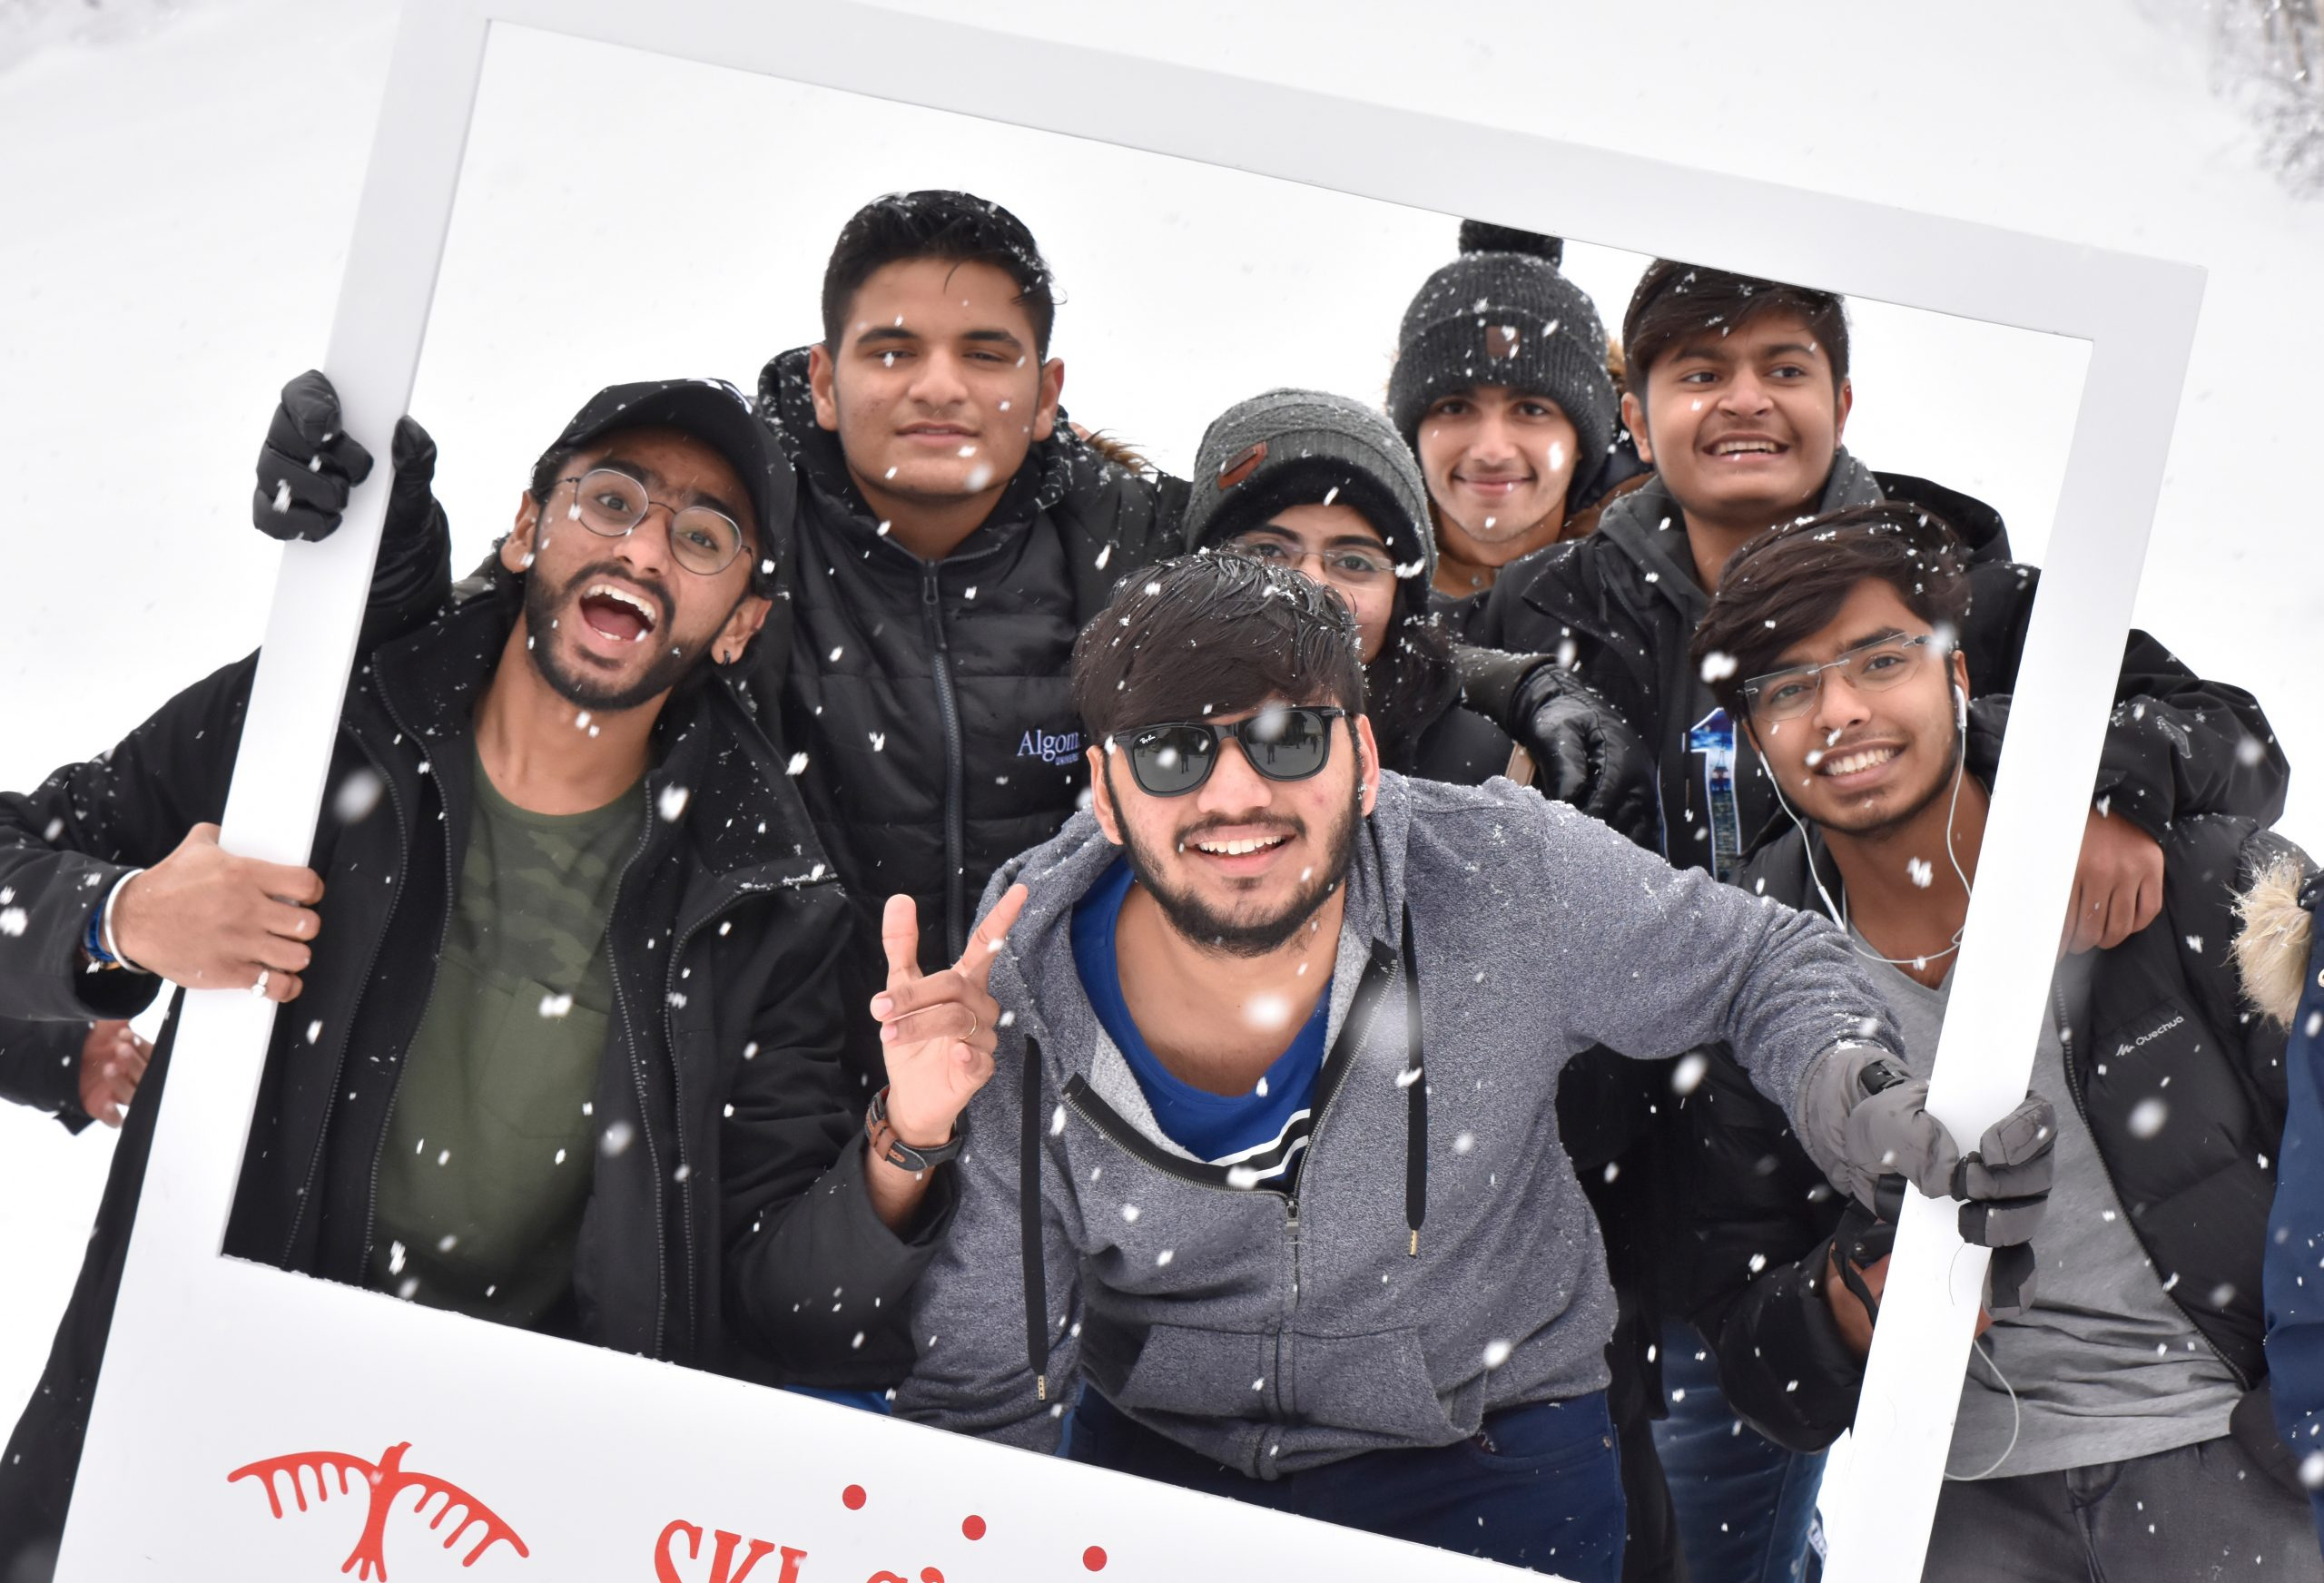 students posing for a group photo in winter